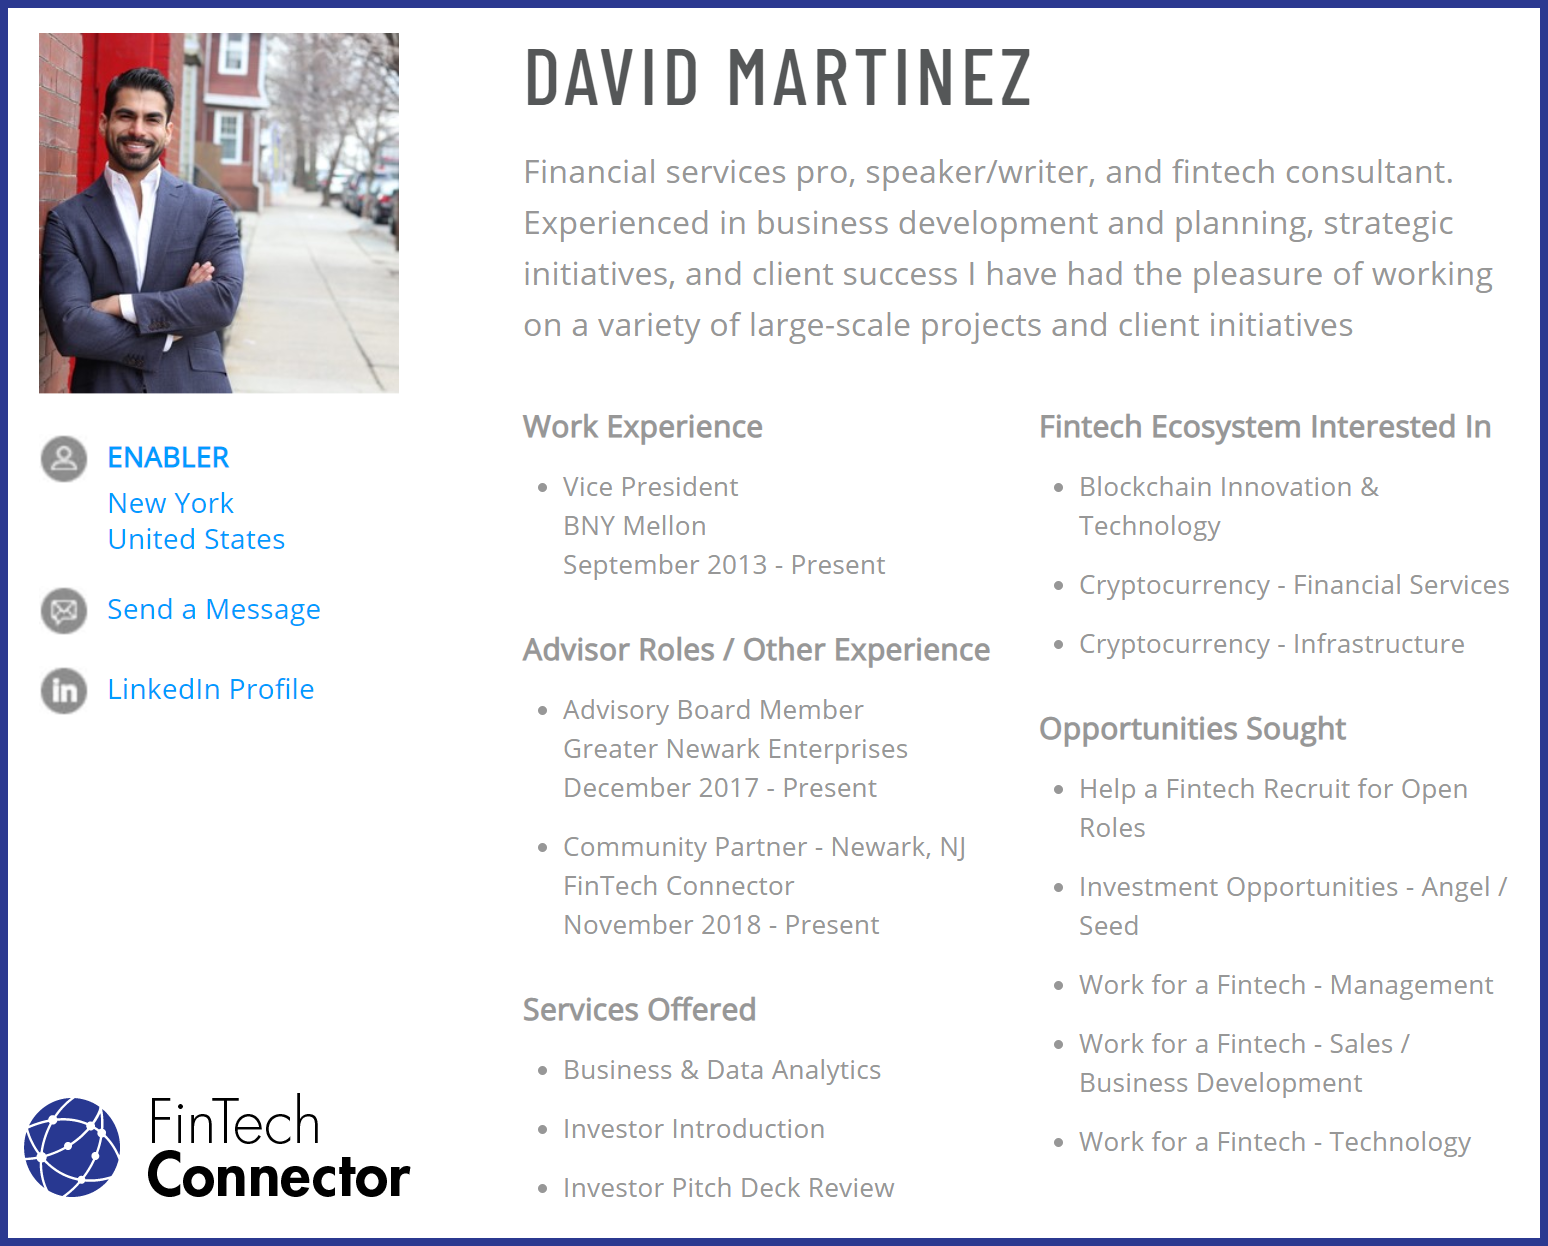 Connect with David Martinez via FinTech Connector